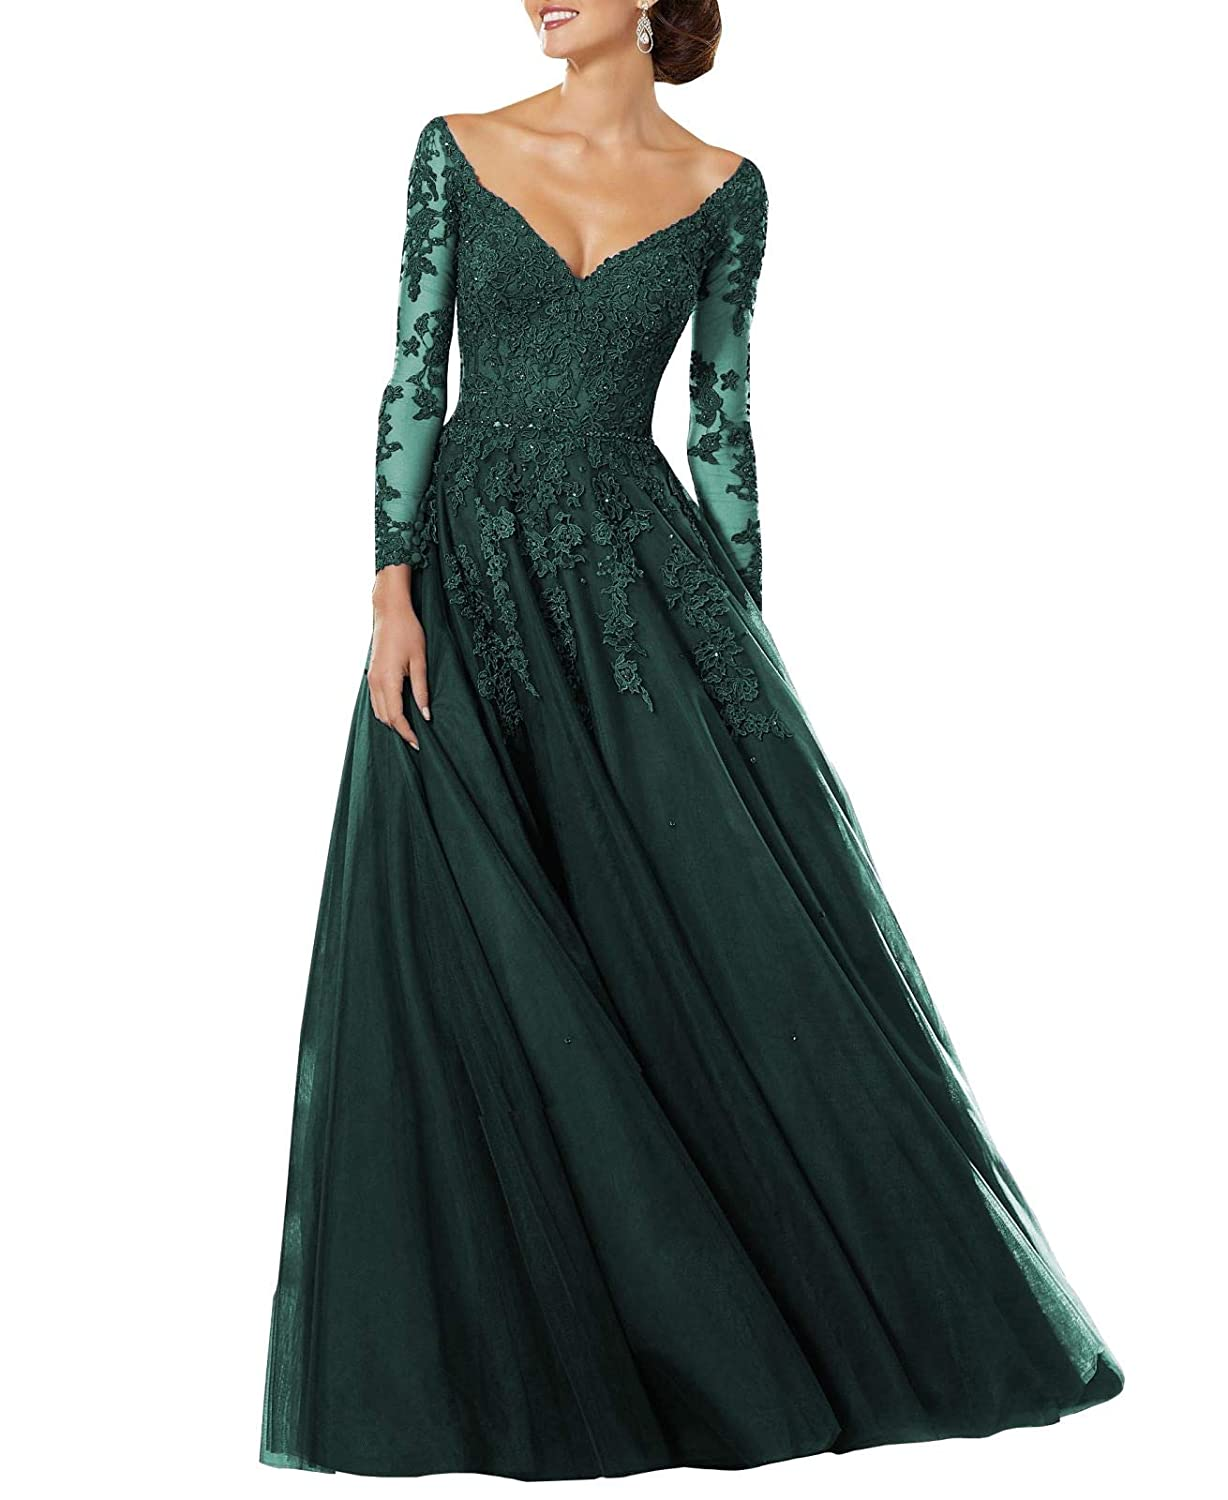 Dark Green Wanshaqin Women's Lace Appliqued VNeck Formal Evening Gown Sleeves Tulle Party Dress with Empire Jewelled Waist